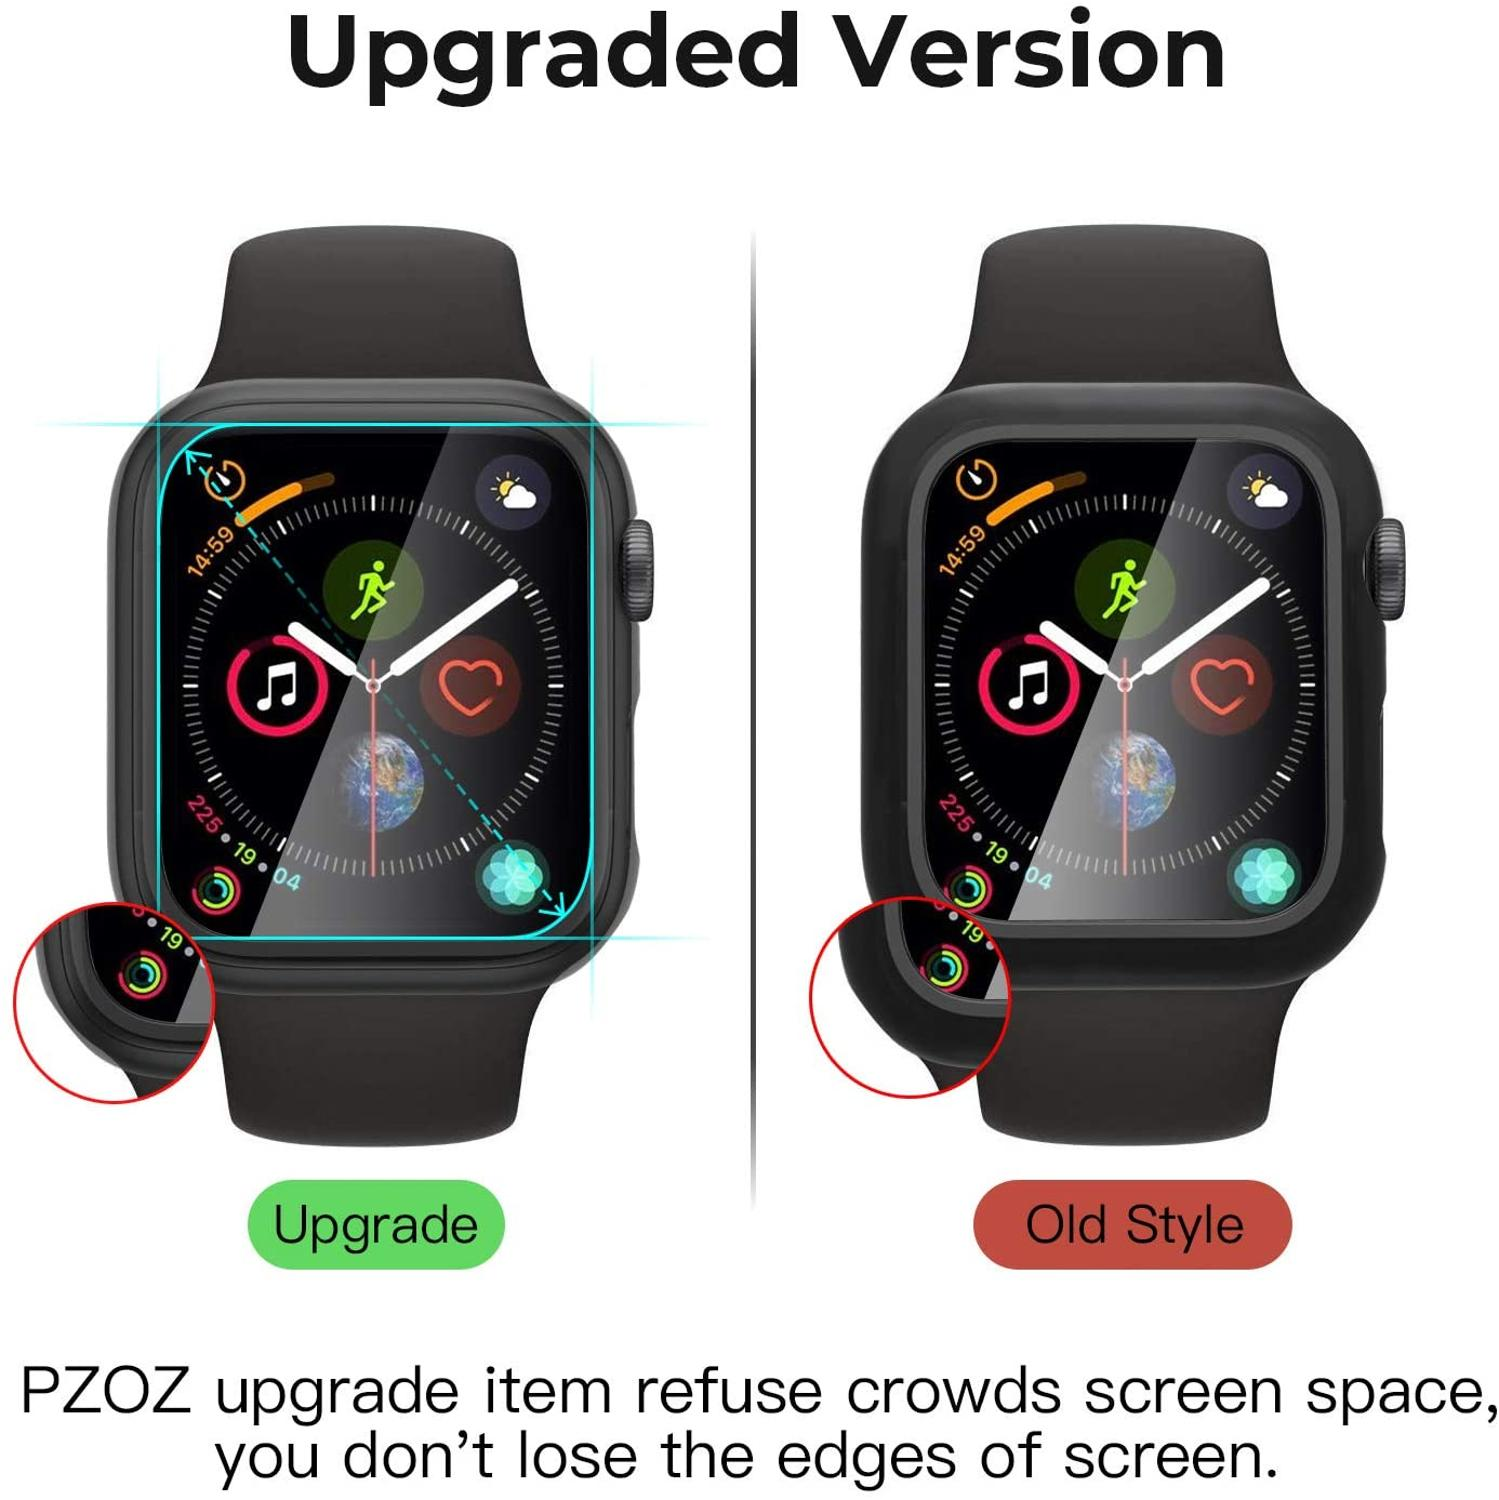 Compatible Apple Watch Series 6 SE Case 44mm 40mm Glass Film With Screen Protector Full Coverage For Iwatch 6 5 4 3 2 42mm 38mm 5